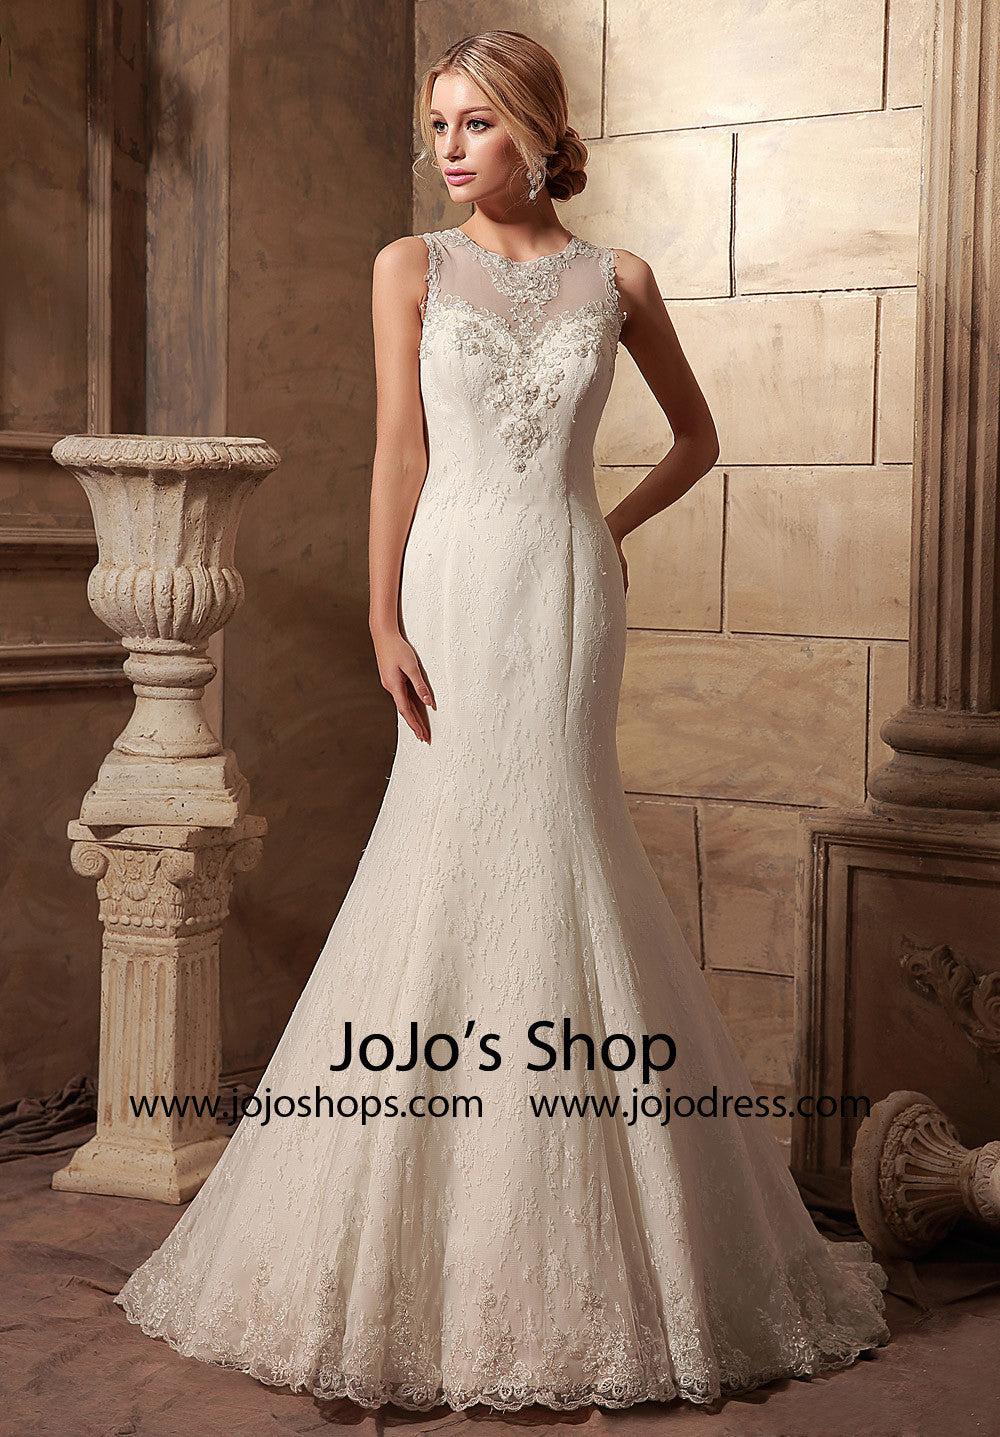 Vintage Style Lace Mermaid Wedding Dress with Illusion Neckline | HL1017